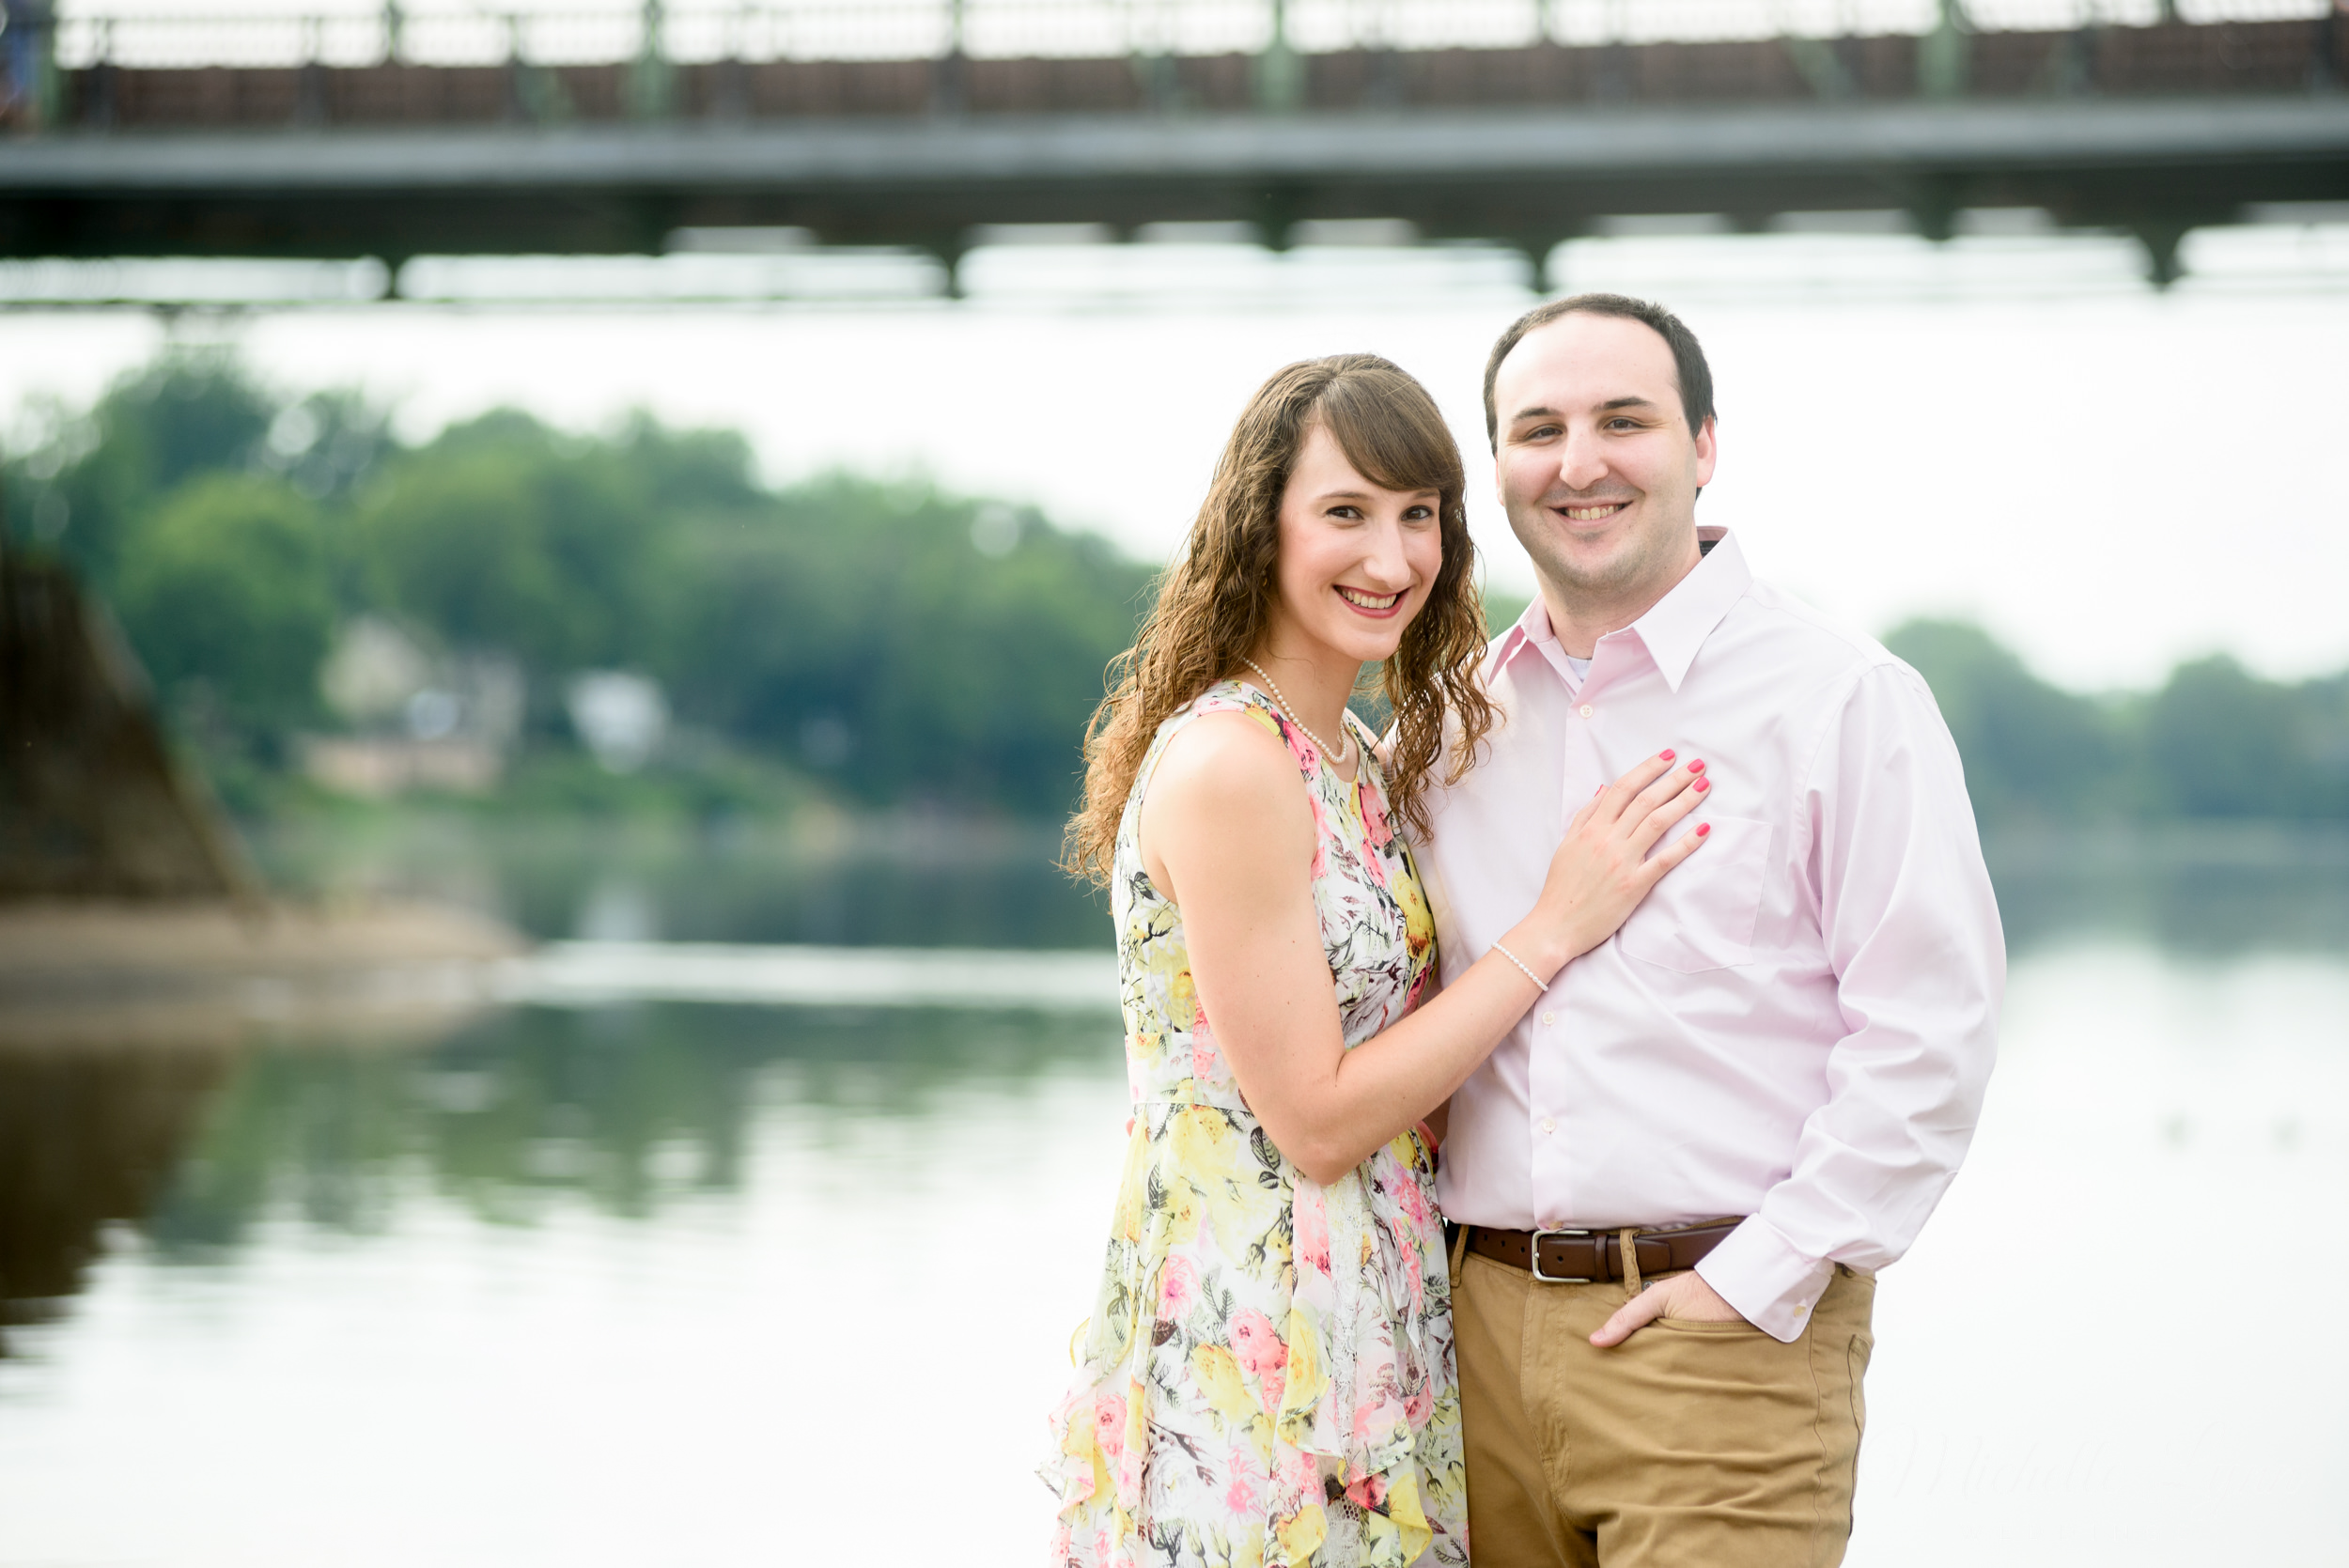 mlw-lambertville-engagement-photos-1.jpg